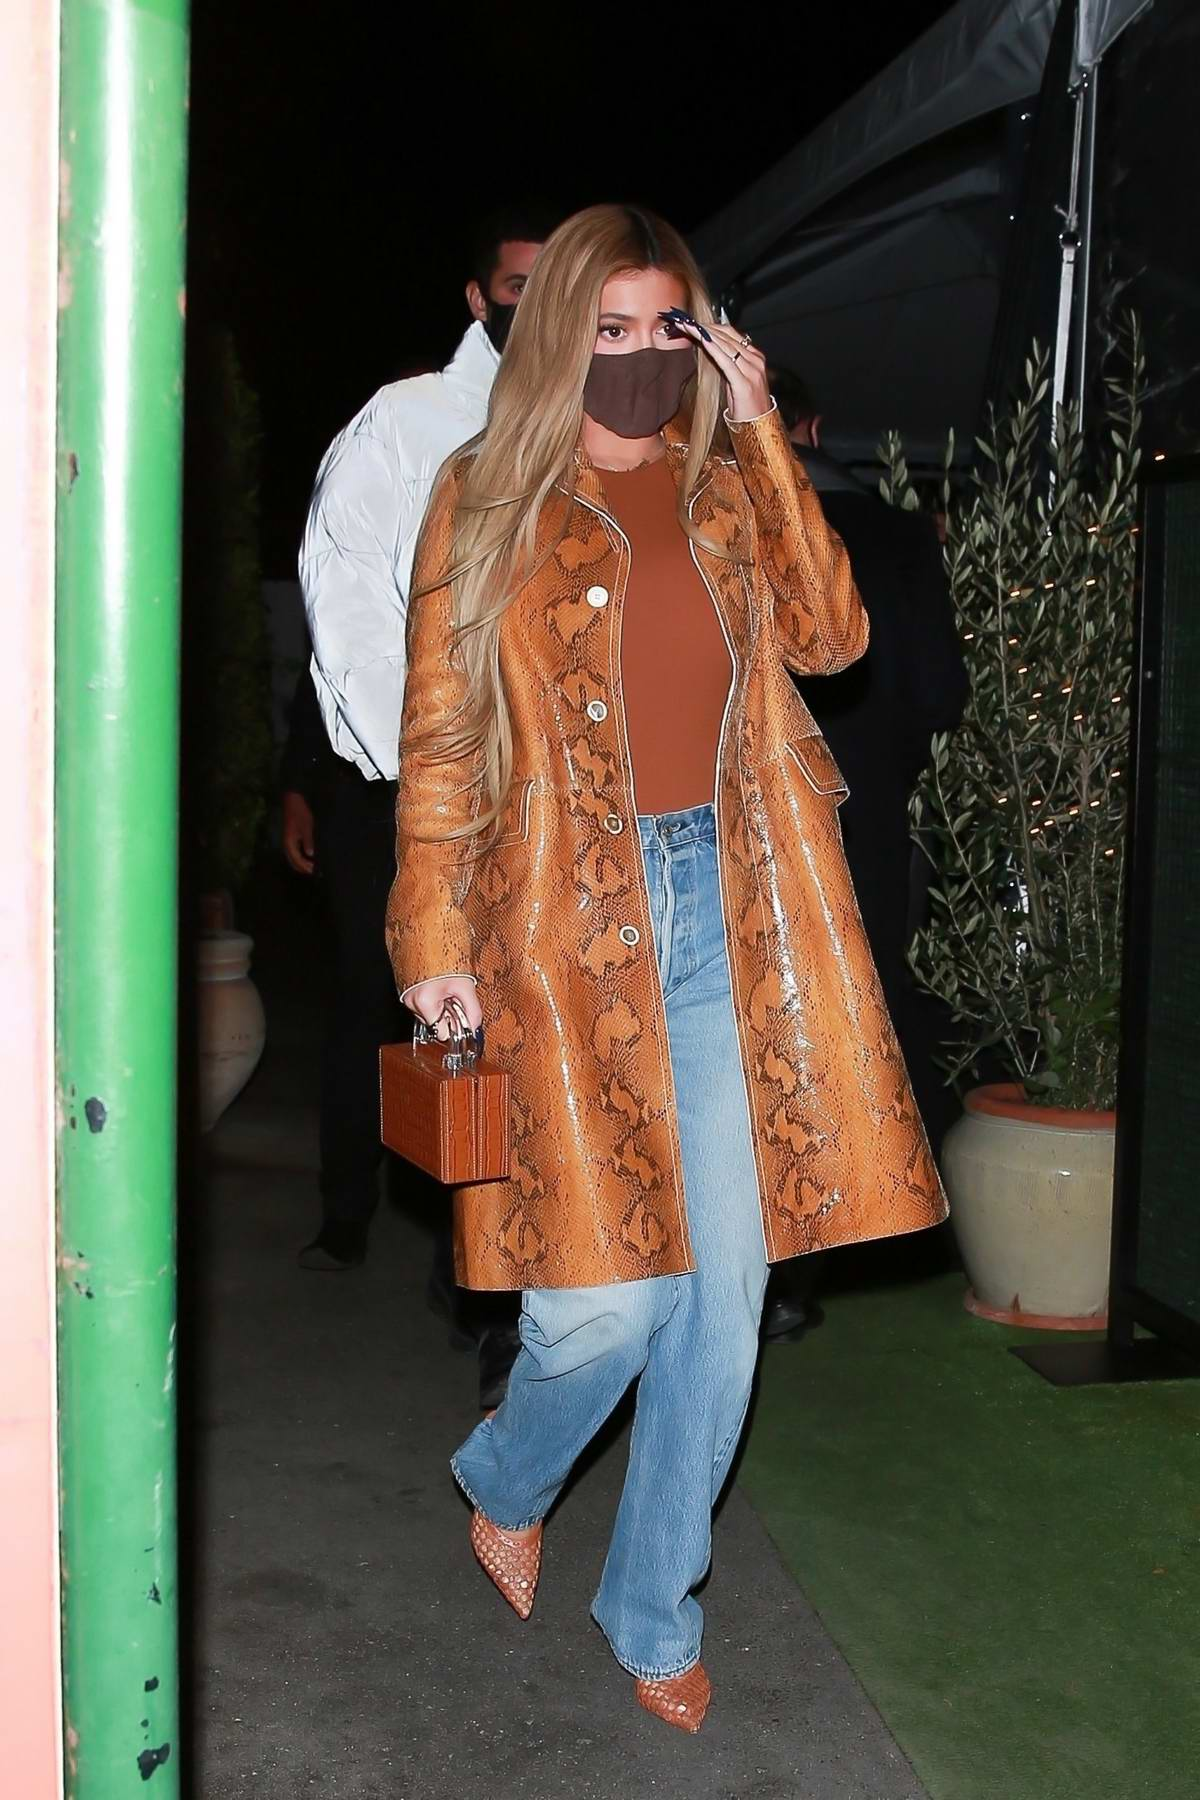 Kylie Jenner looks classy as she steps out for dinner with friends in Santa Monica, California